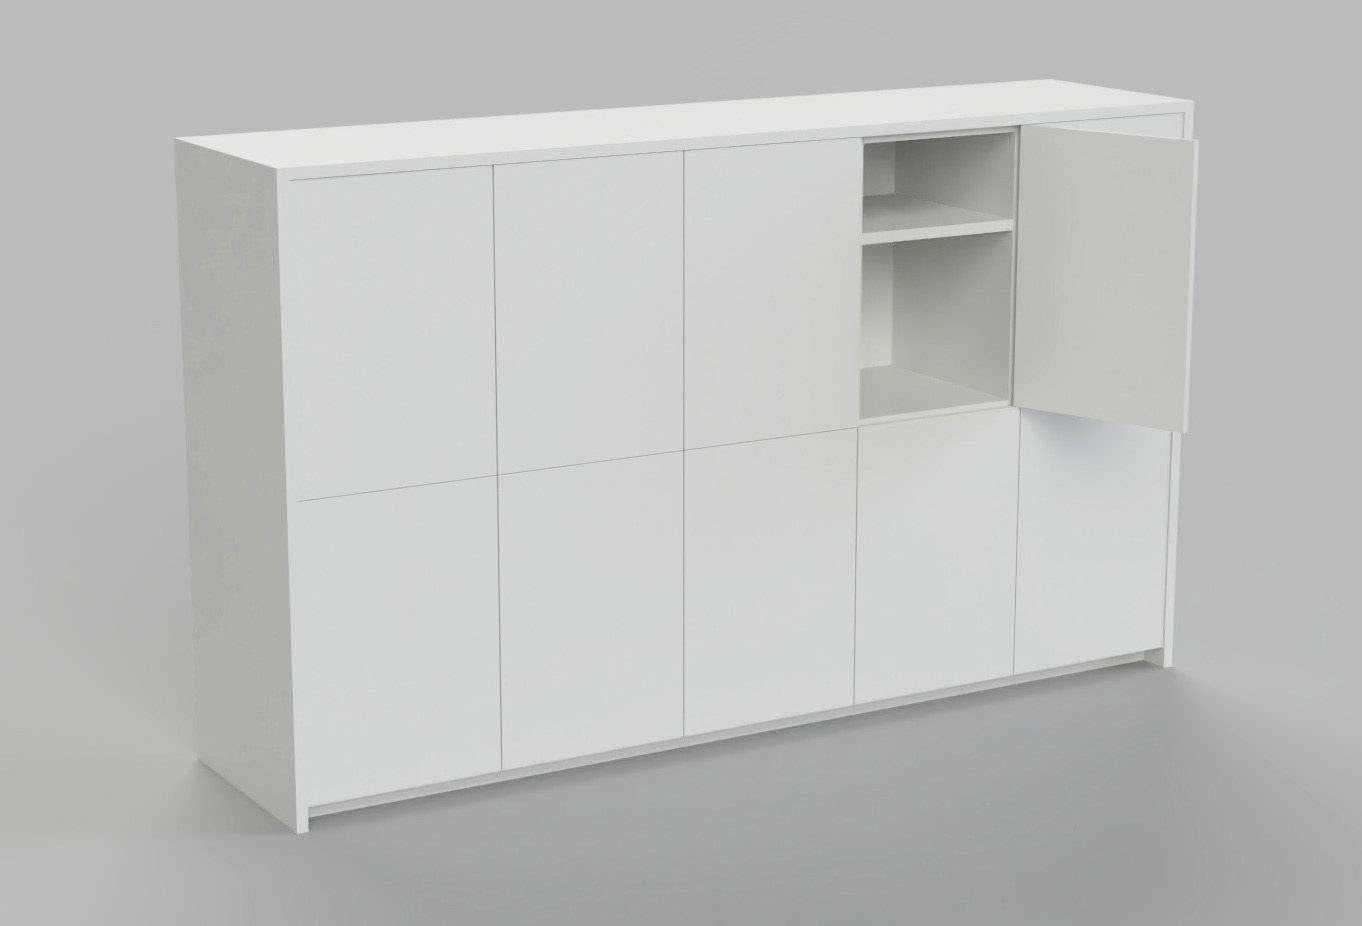 Touchless Locker option with shelving